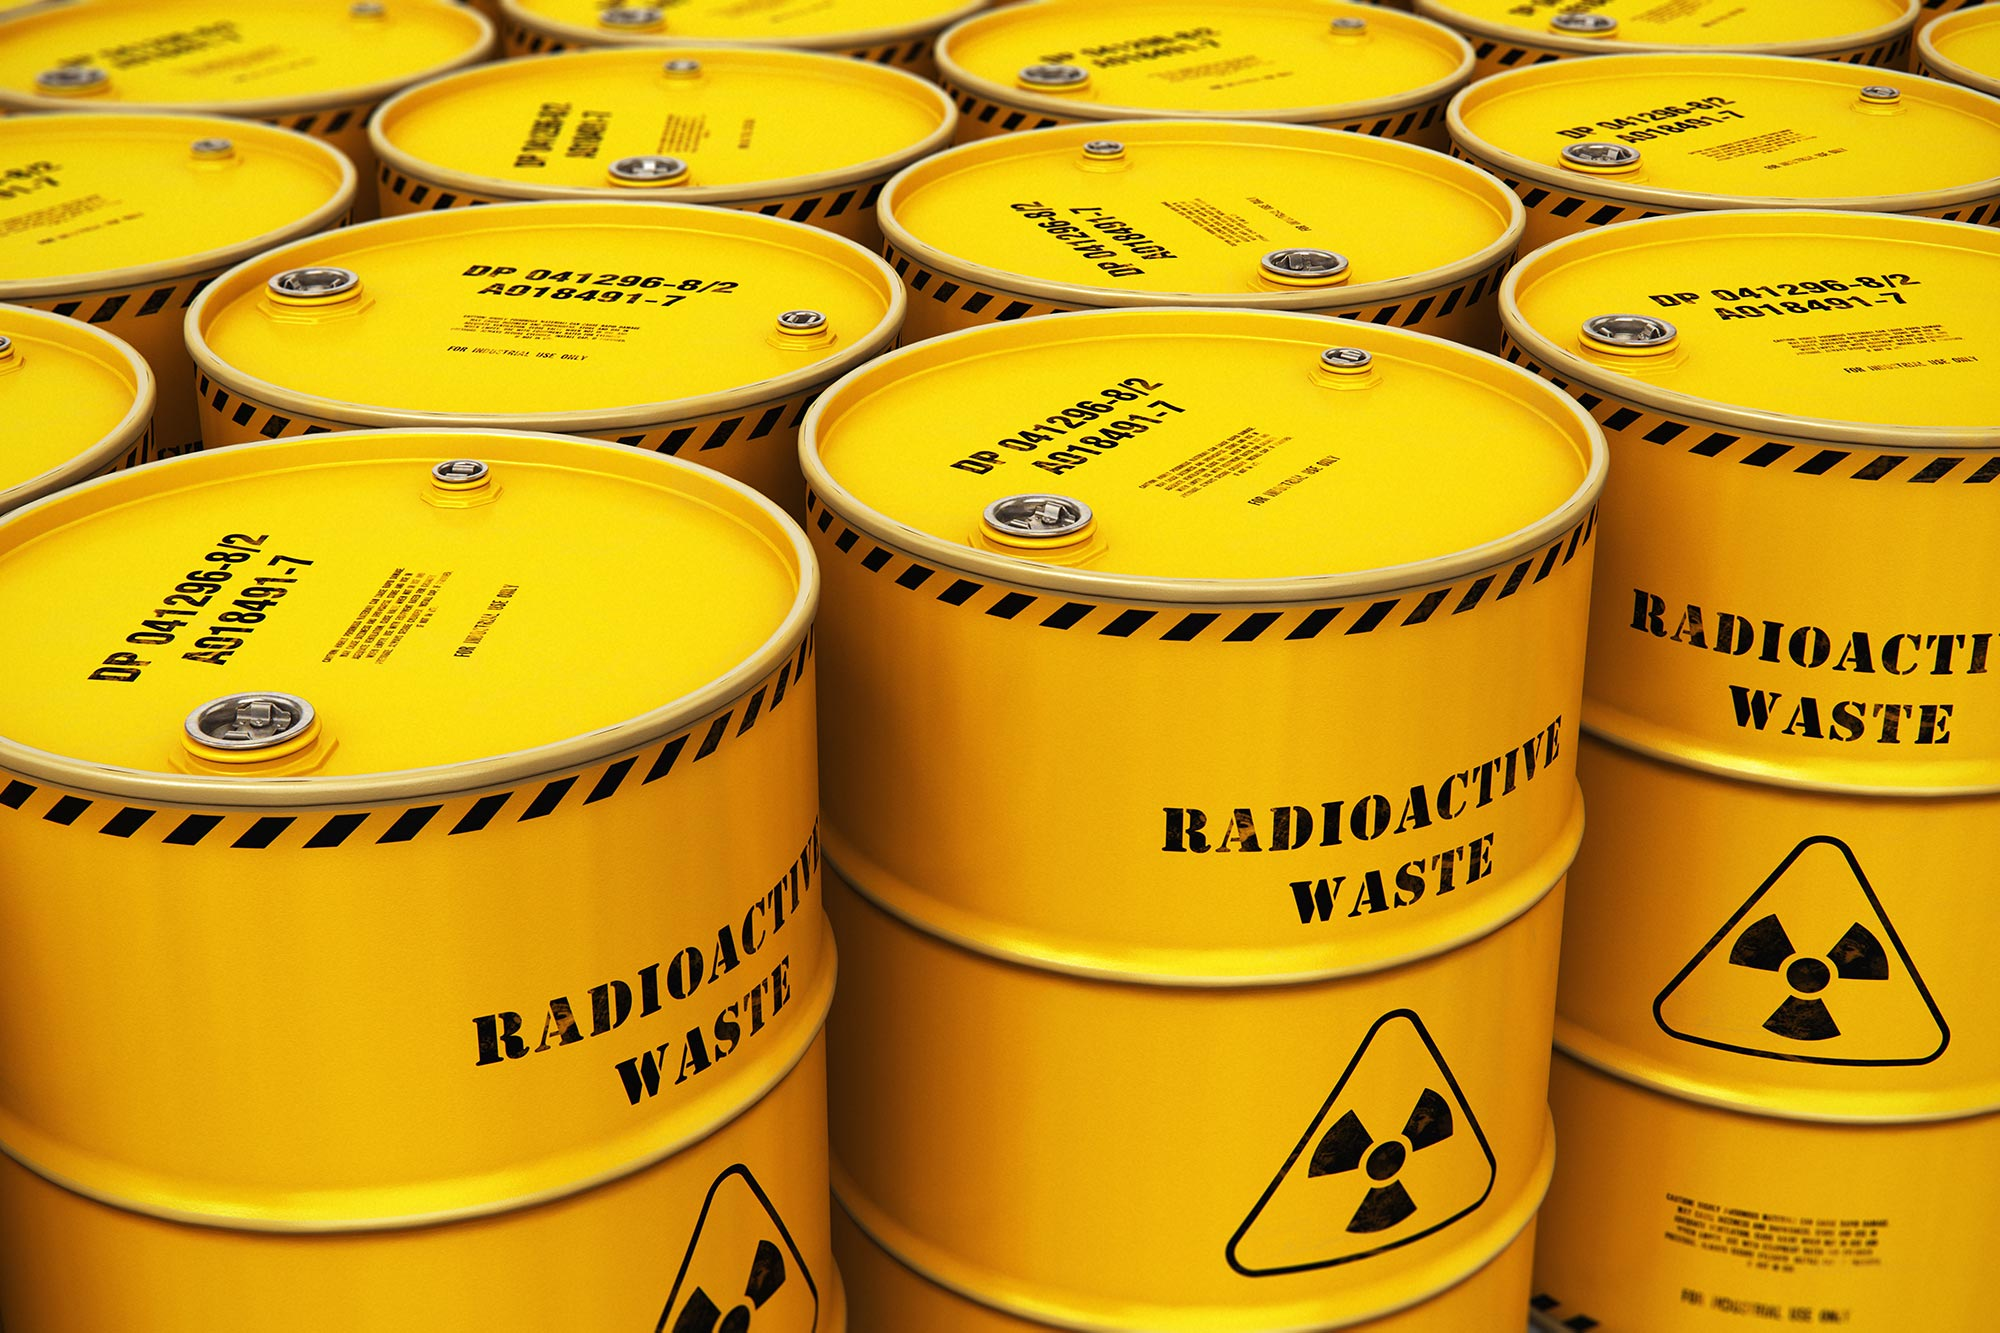 Unused Stockpiles of Nuclear Waste Could Be More Useful Than We Might Think